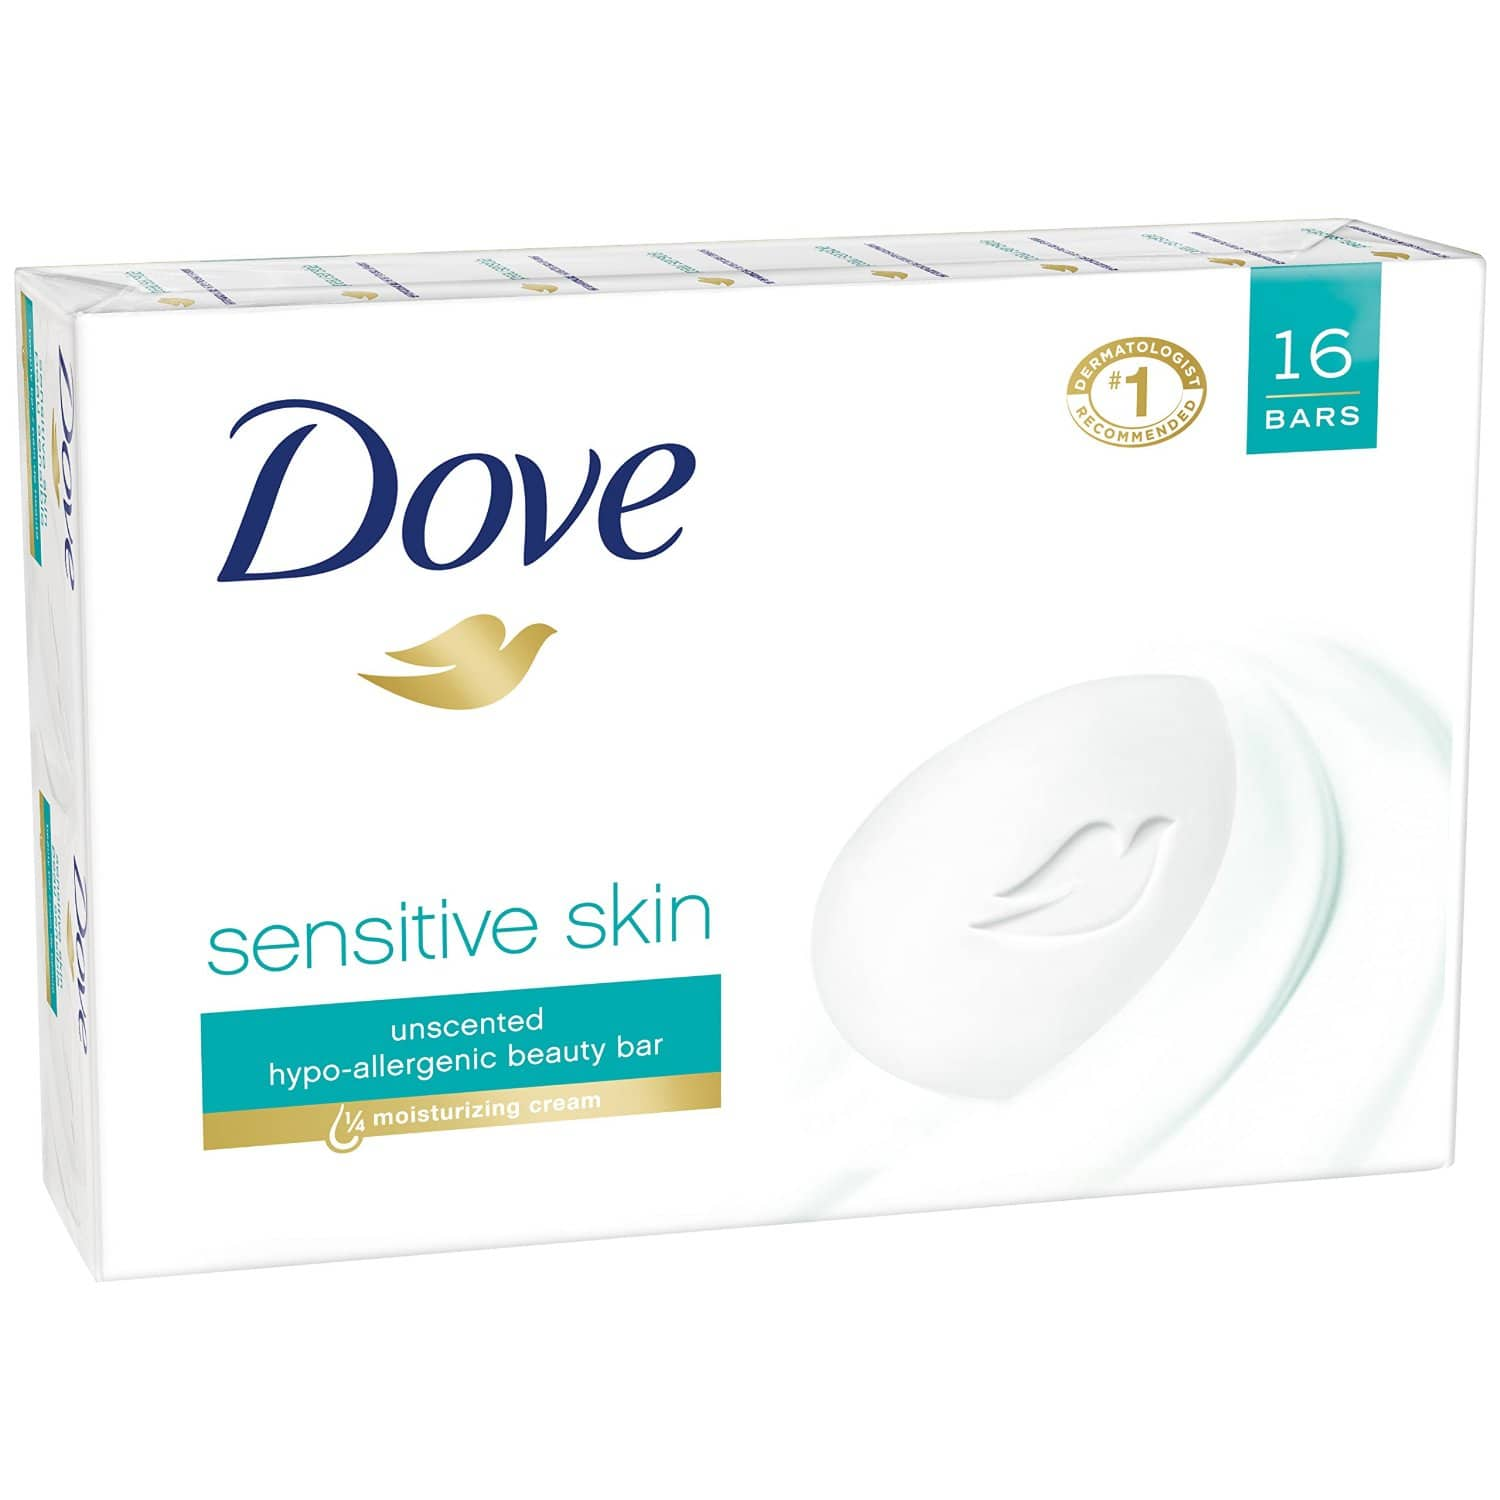 16-Count of 4oz Dove Sensitive Skin Bar Soap (Unscented) - $12.00 (or less) Using $2 Clipped Coupon (on product page) + 15/% S&S + Free Shipping @amazon.com